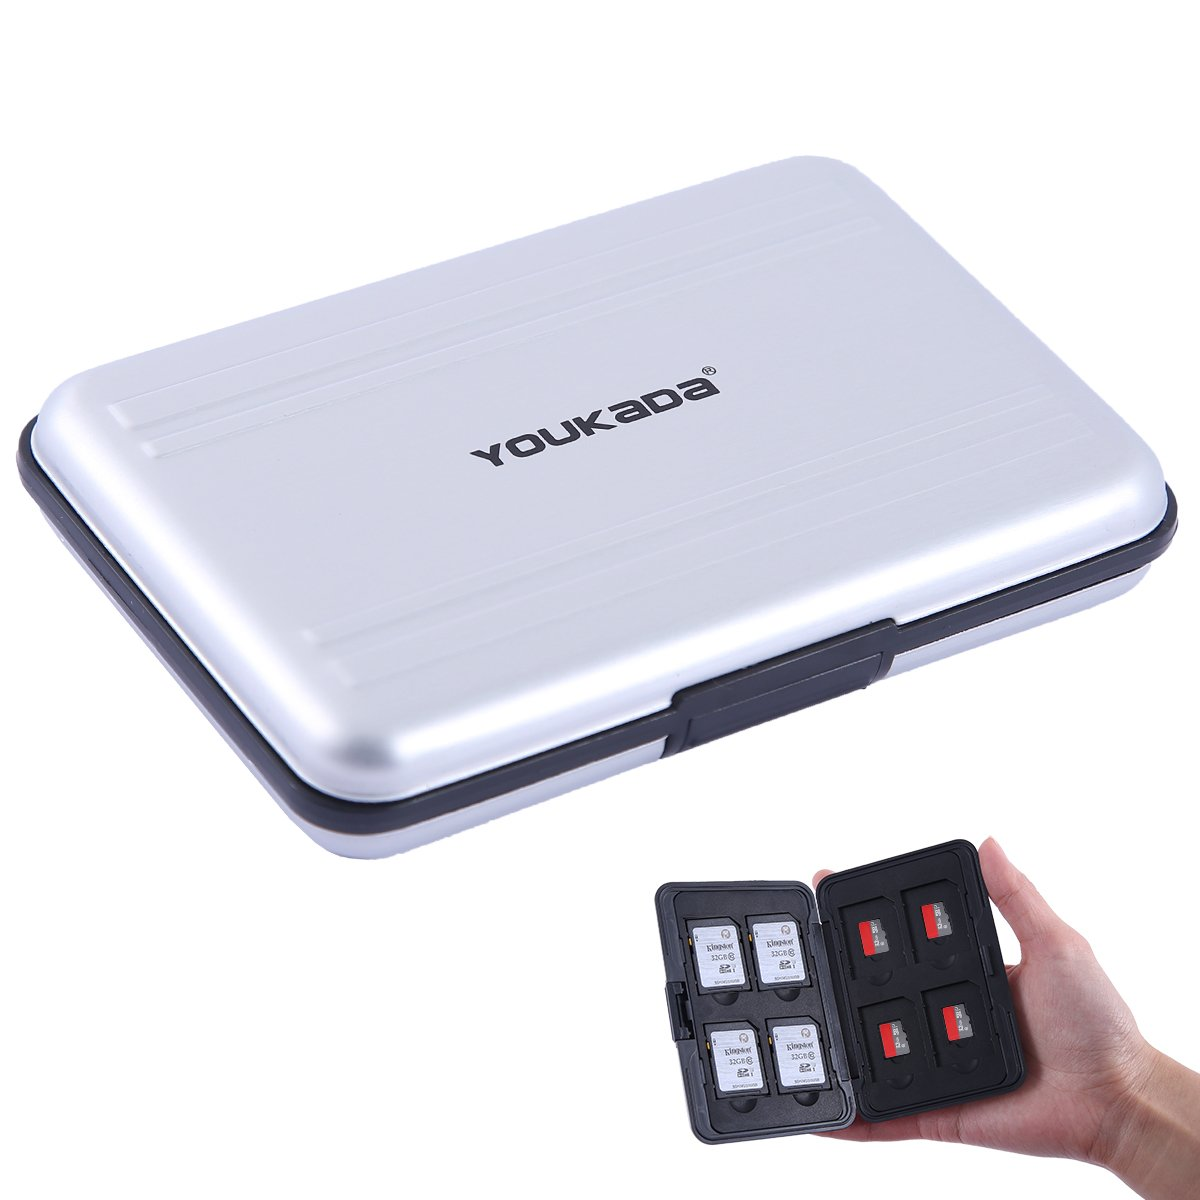 YOUKaDa Metal Memory Card Case SD Card Holder Water-Resistant Pocket-Sized SD Holder for 8 SD Cards & 8 Micro SD Cards (Silver)